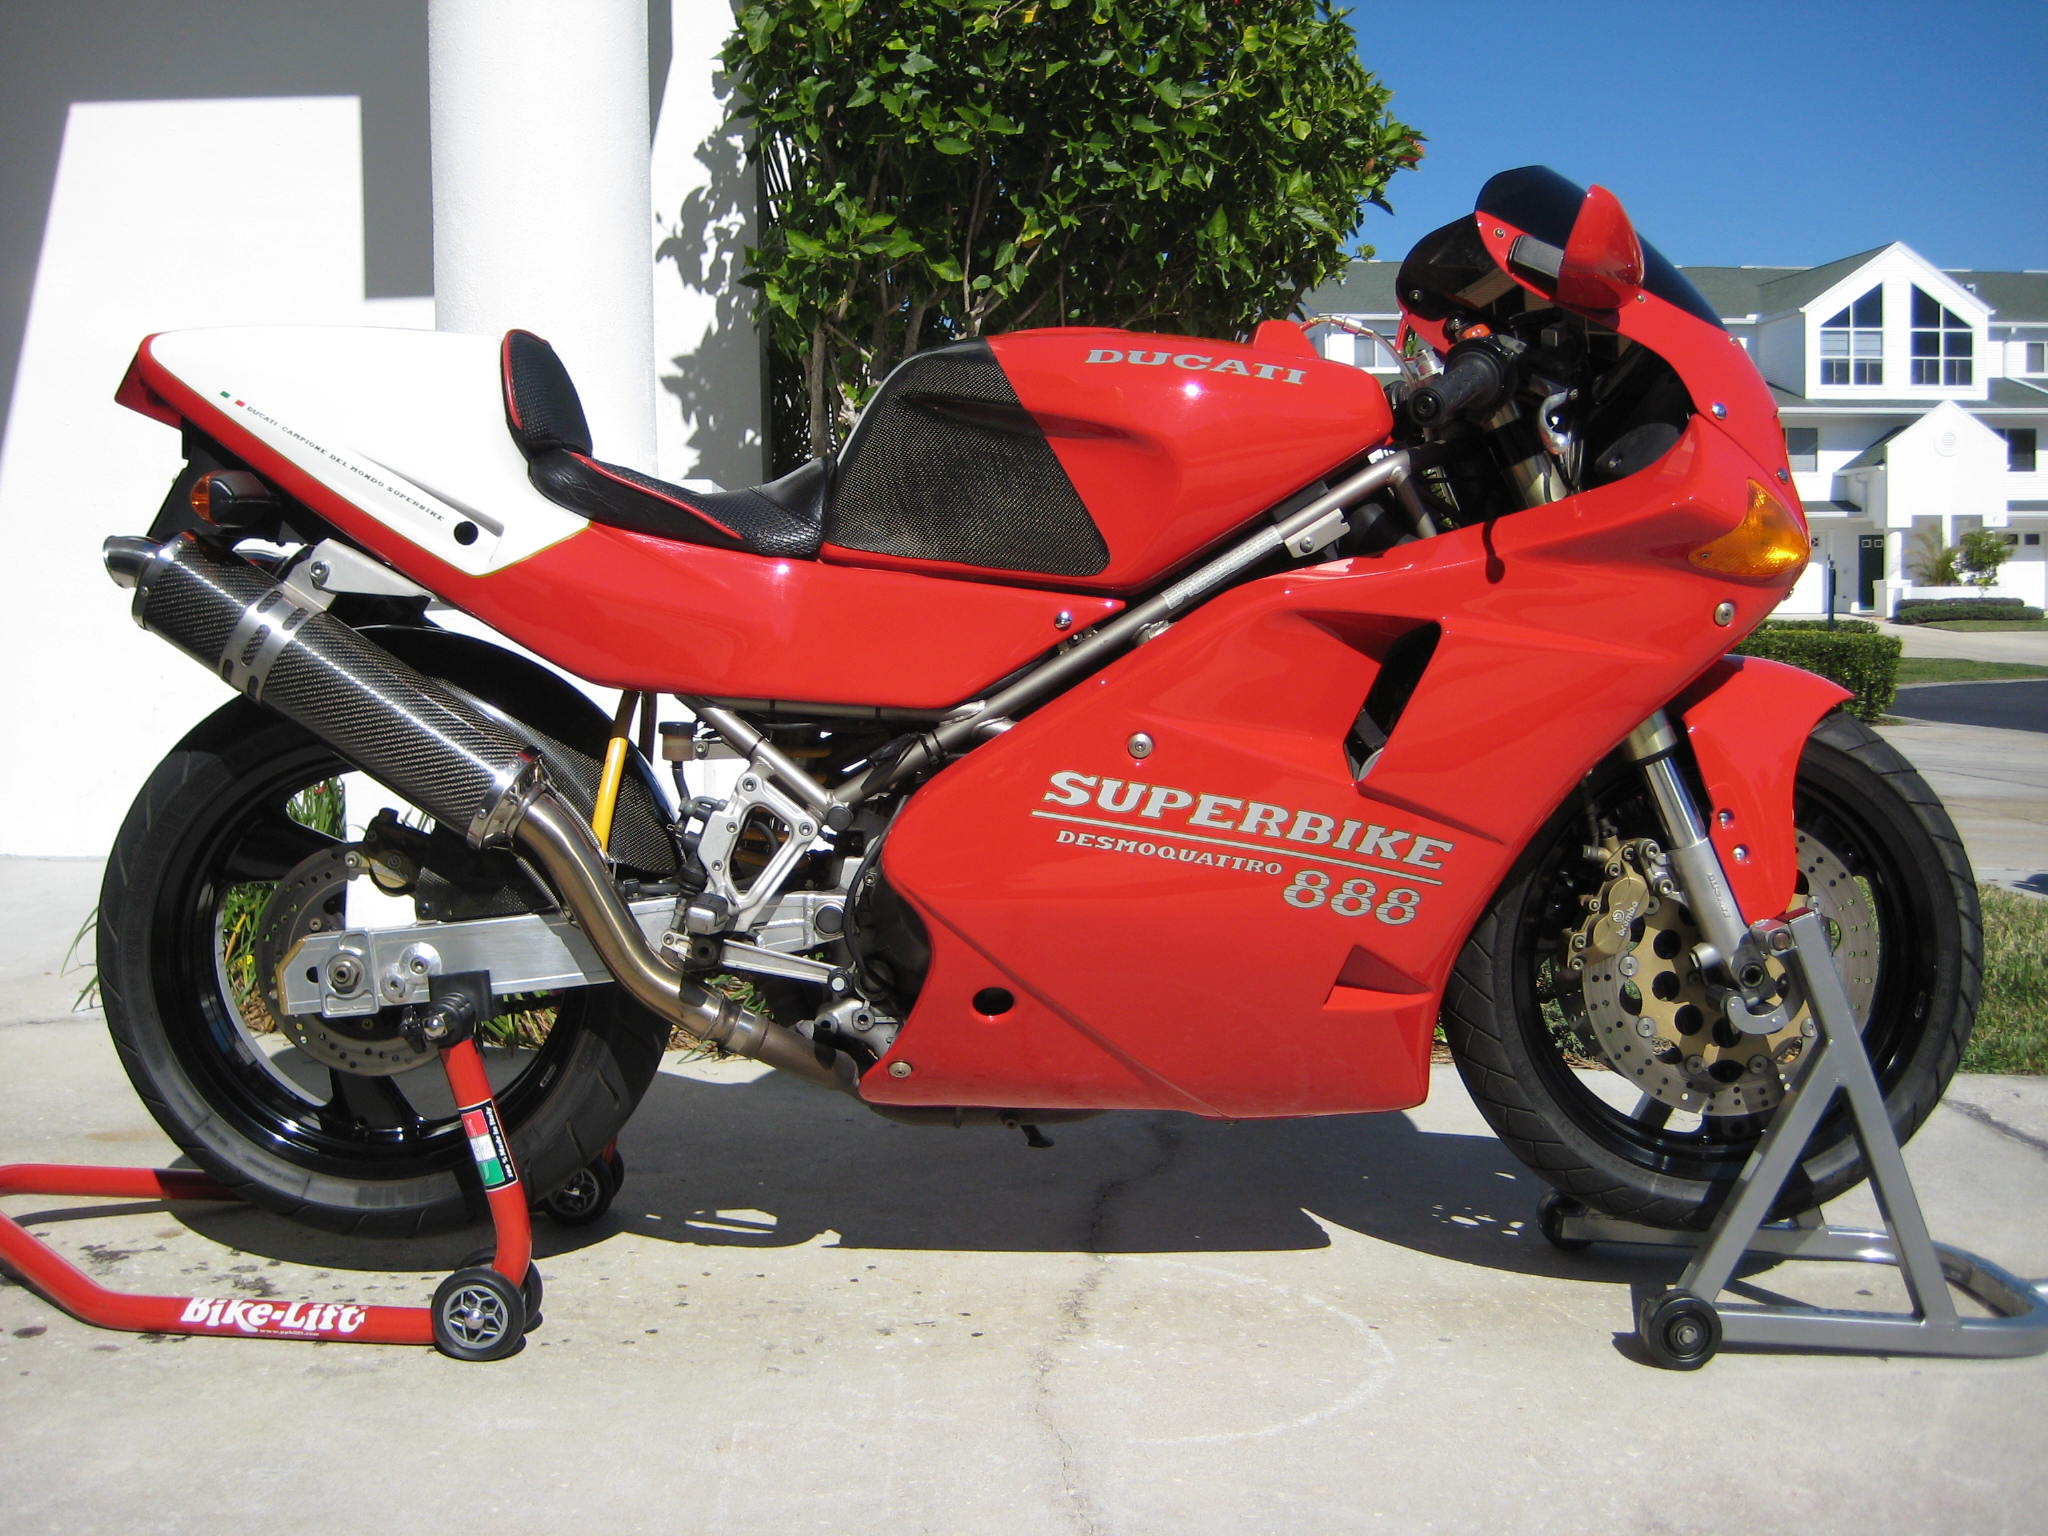 Motorcycle Stands Recommendations Page 2 Ducati Ms